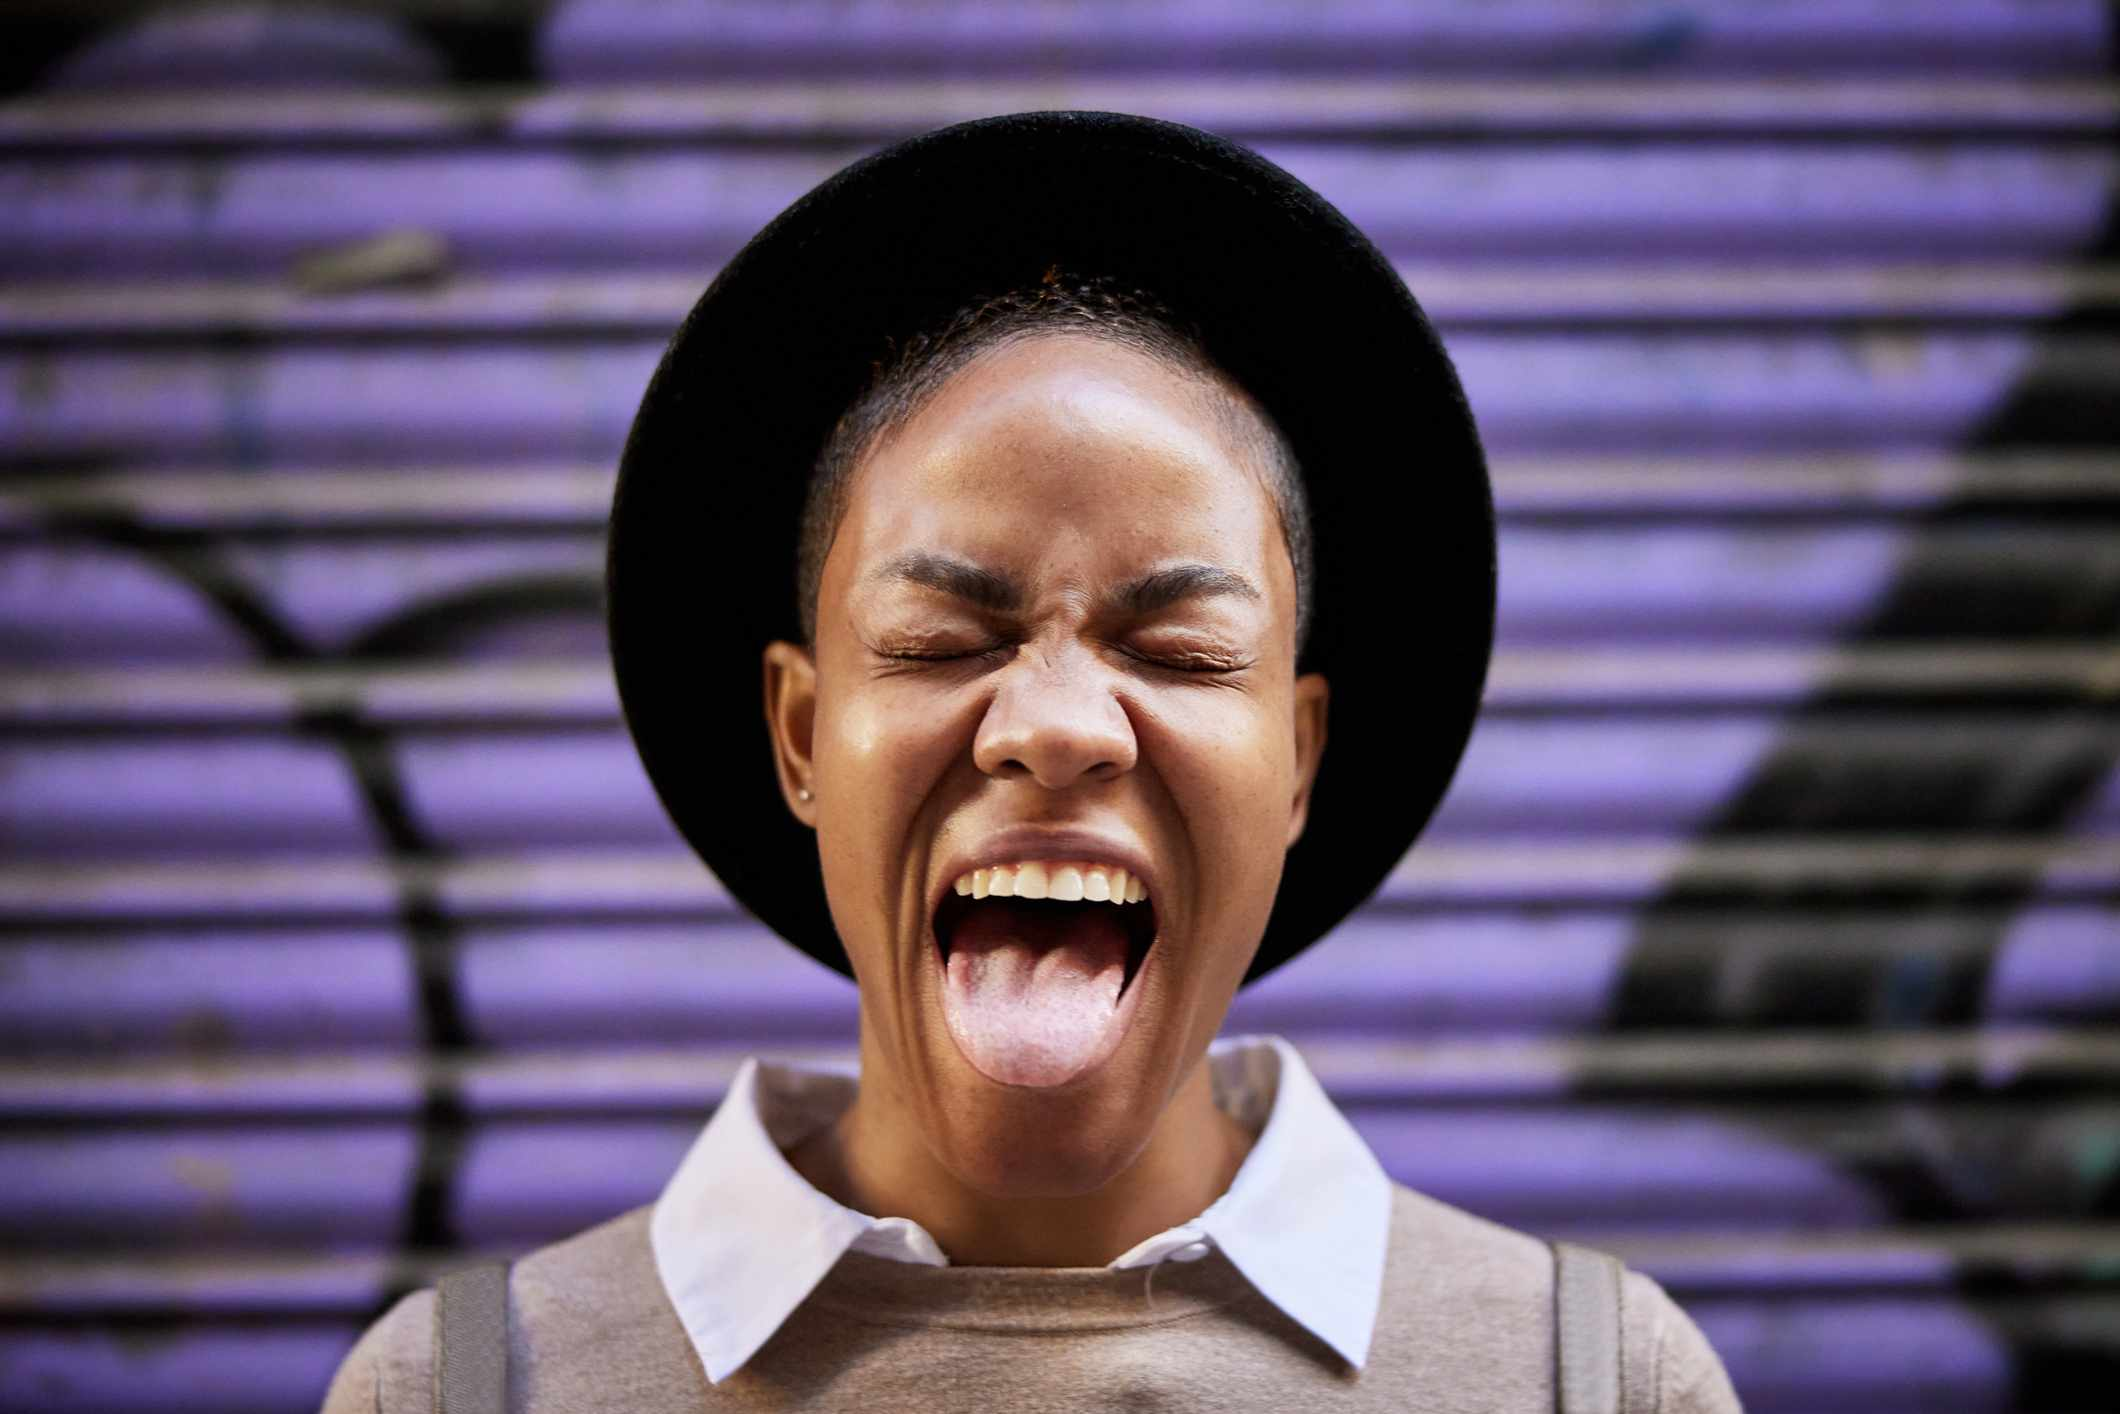 Woman grimacing and sticking out tongue